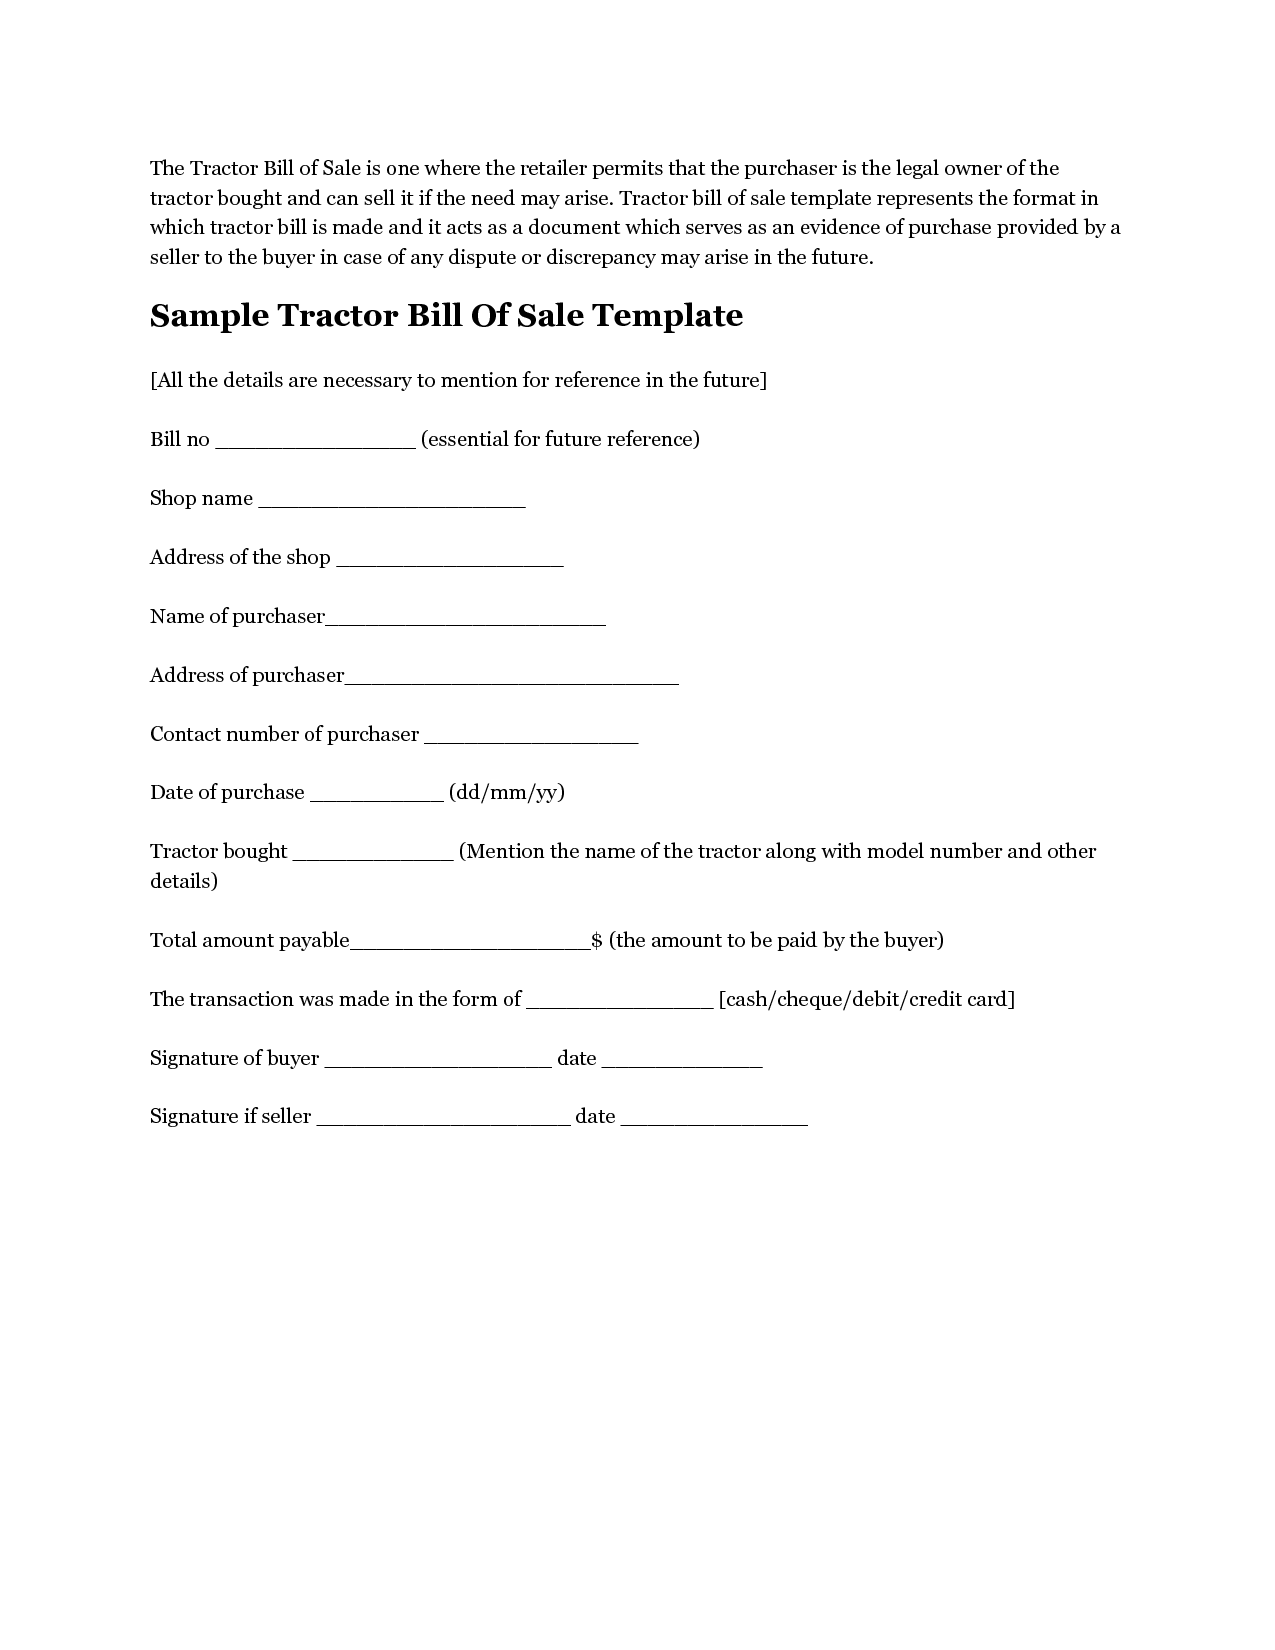 Free Printable Tractor Bill Of Sale Form  Generic